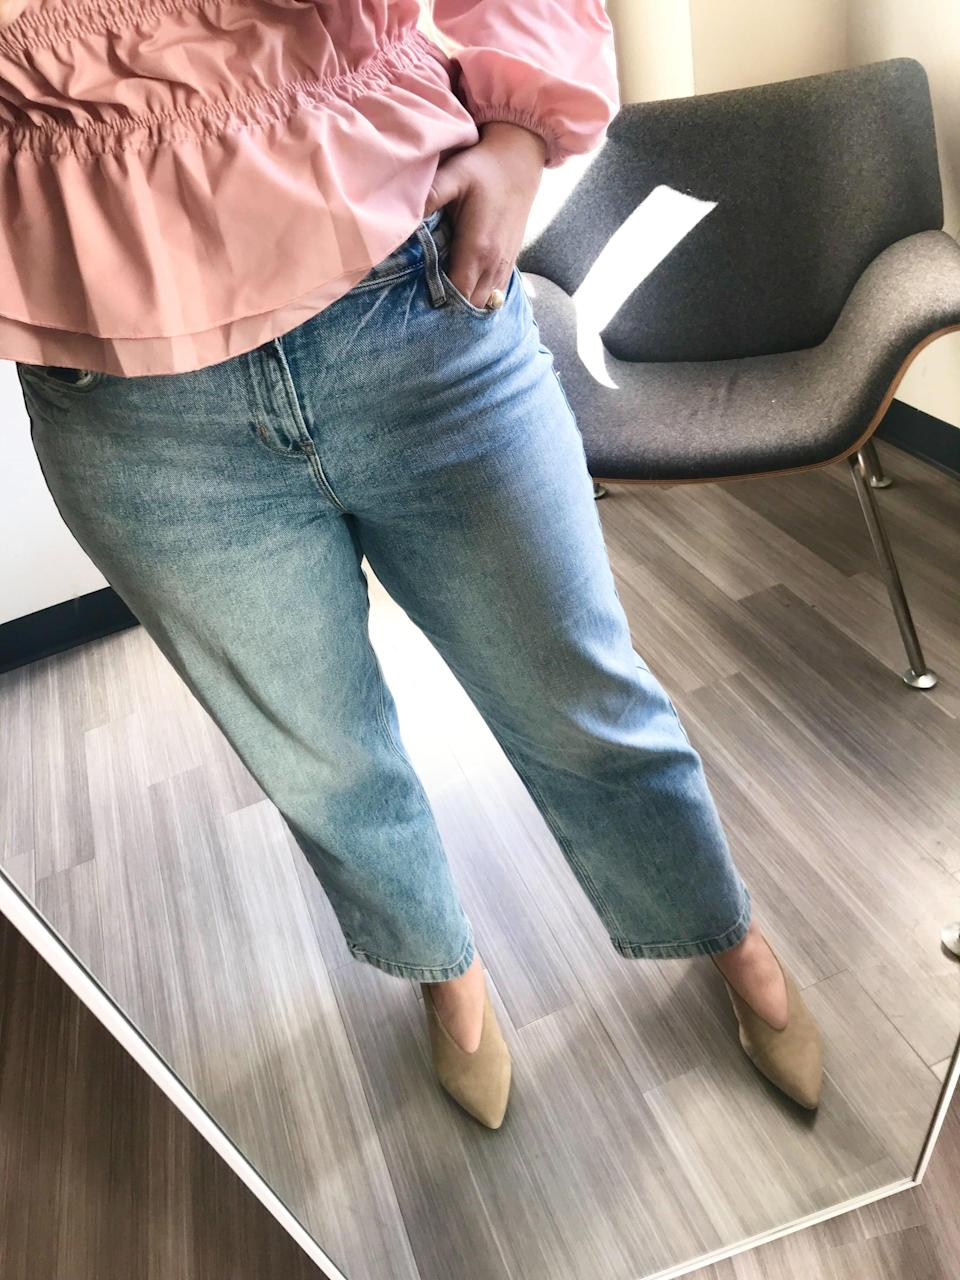 """<p><strong>The item:</strong> <span>Old Navy High-Waisted Light Stone-Washed Slim Wide-Leg Jeans</span> ($40) </p> <p><strong>What our editor said:</strong> """"I slipped them on and they buttoned over my stomach with ease, fitting snugly without squeezing or pinching. I bought a size 12, which is my typical choice for bottoms, so they're true to size. Not only do these jeans fit well, but they're also smoothing and a great cut. They have a bit of elastic in them, which makes the material really comfortable, too. Luckily, even with the built-in stretch, they don't bag out after wearing them all day. The wider leg is cute because it can easily be dressed up or down. I found a winner! I could definitely wear a bodysuit or tucked-in shirt with these jeans and feel amazing."""" - MCW</p> <p>If you want to read more, here is <a href=""""https://www.popsugar.com/fashion/old-navy-jeans-for-women-review-47260507"""" class=""""link rapid-noclick-resp"""" rel=""""nofollow noopener"""" target=""""_blank"""" data-ylk=""""slk:the complete review"""">the complete review</a>.</p>"""